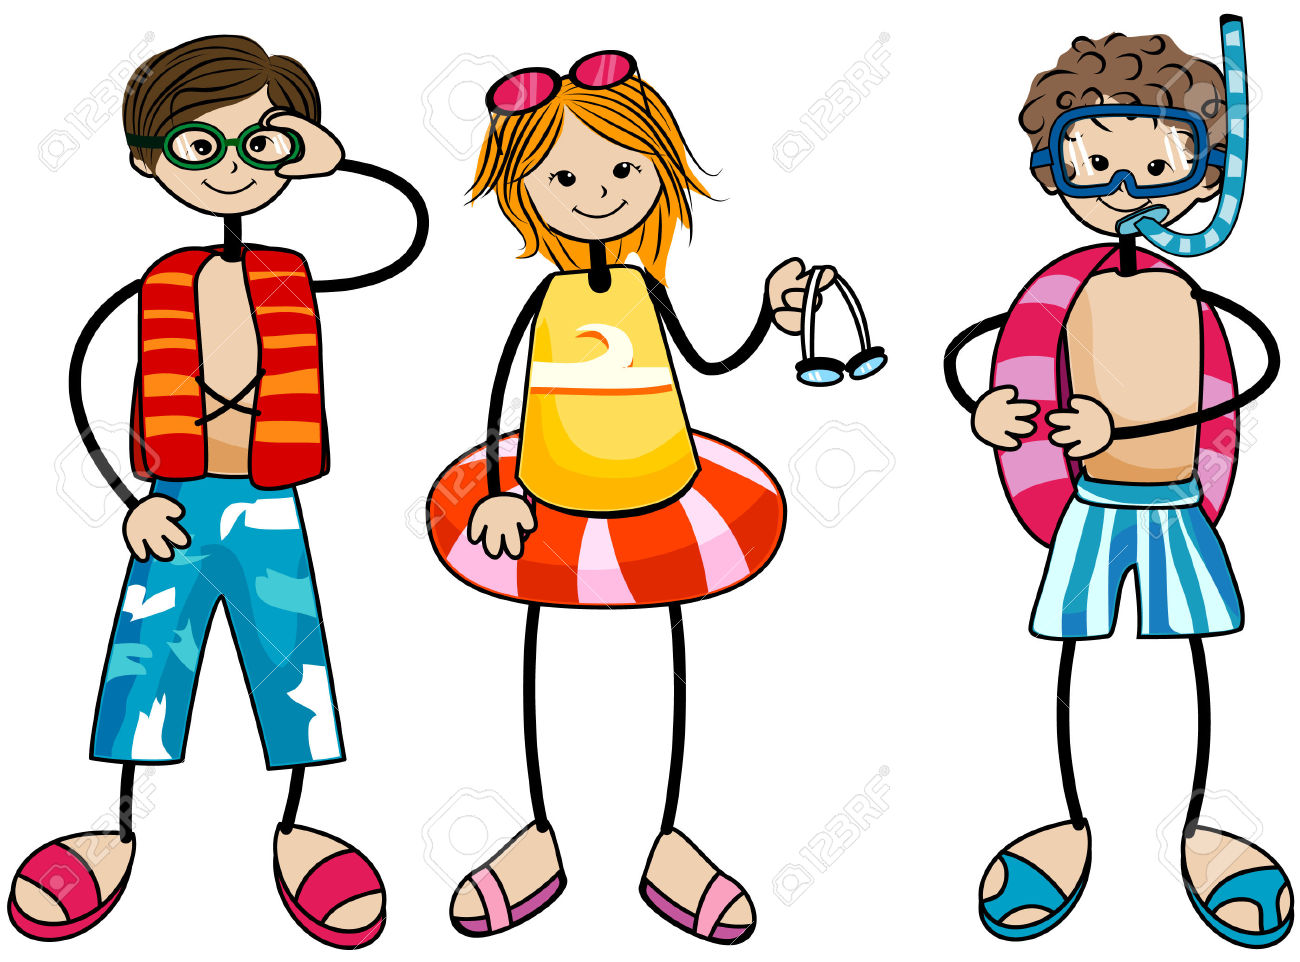 Kids Swimming Clipart Free | Free download on ClipArtMag